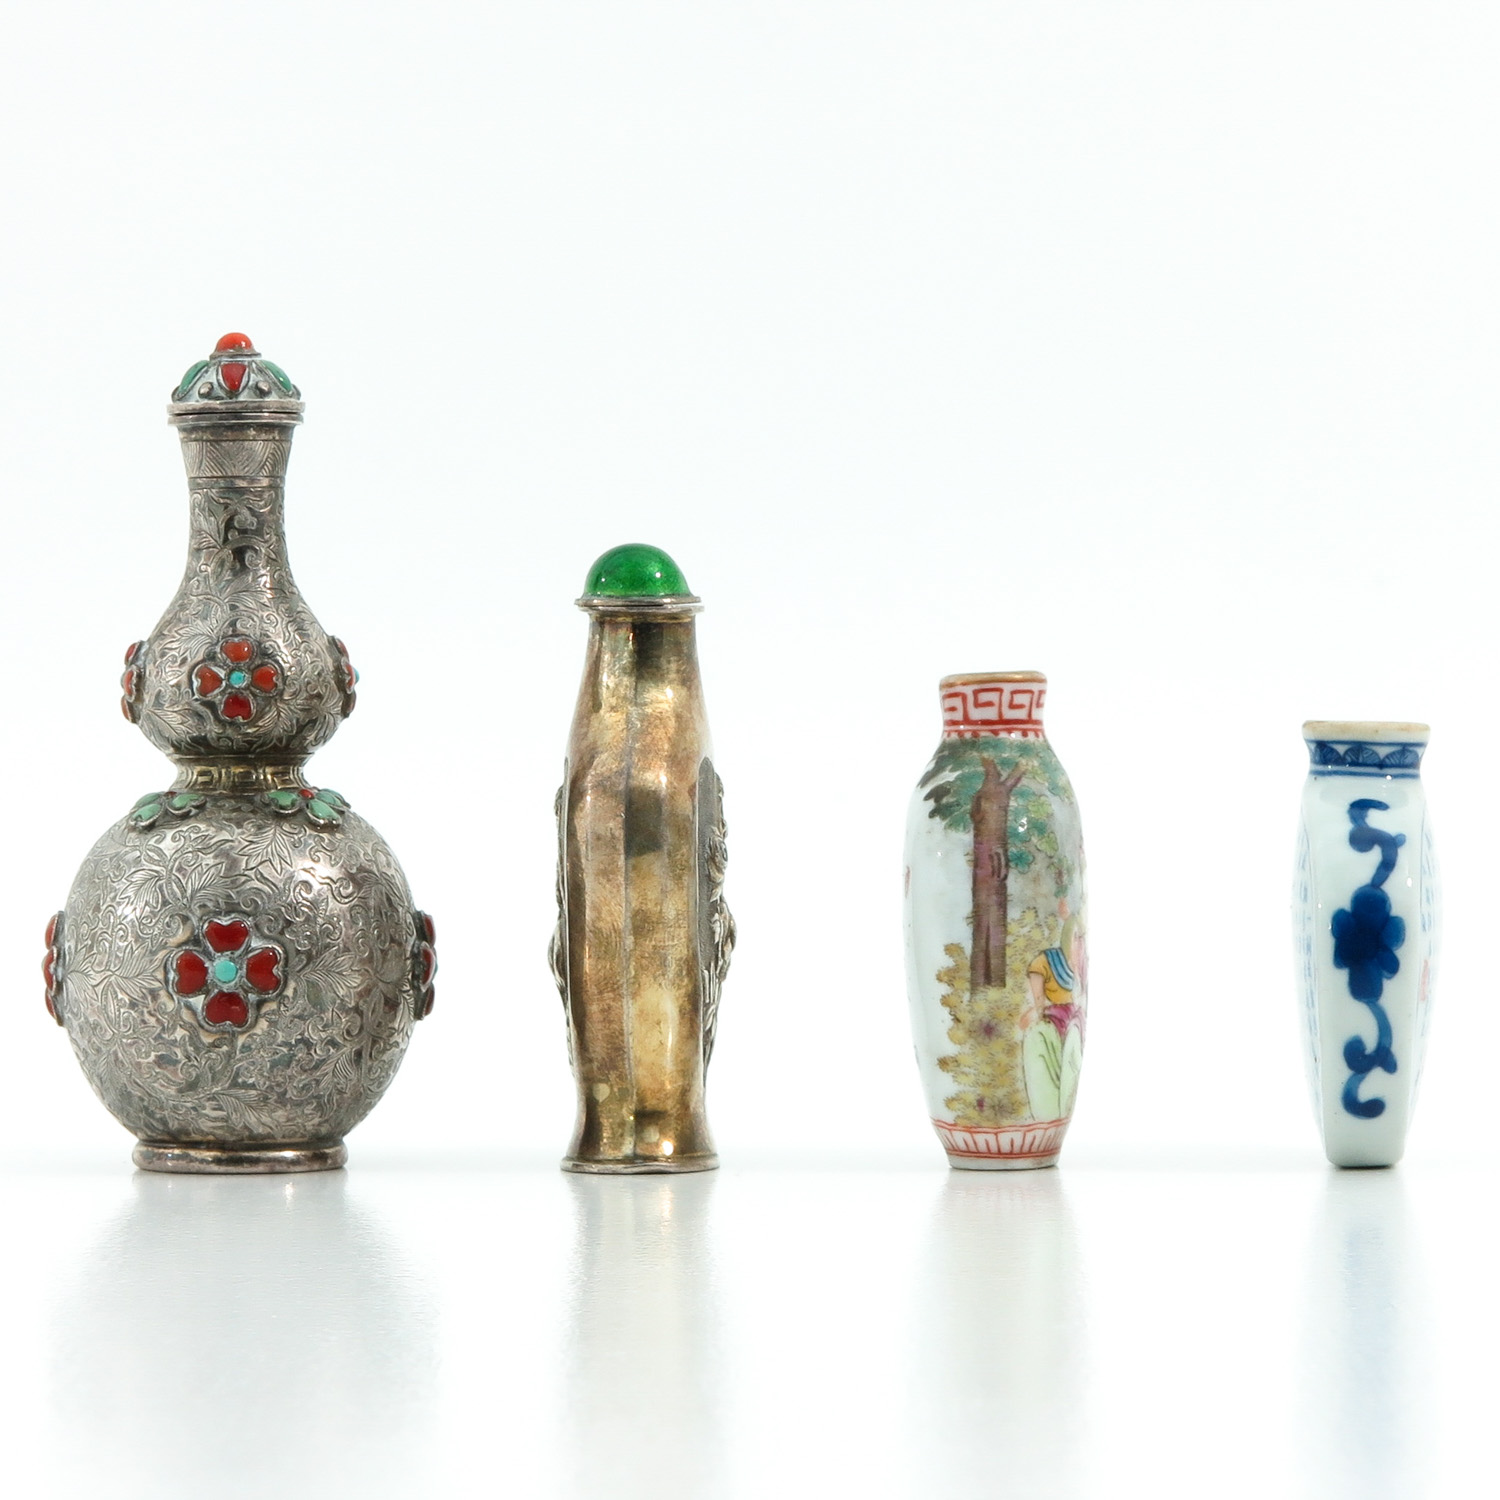 A Diverse Collection of 4 Snuff Bottles - Image 4 of 10